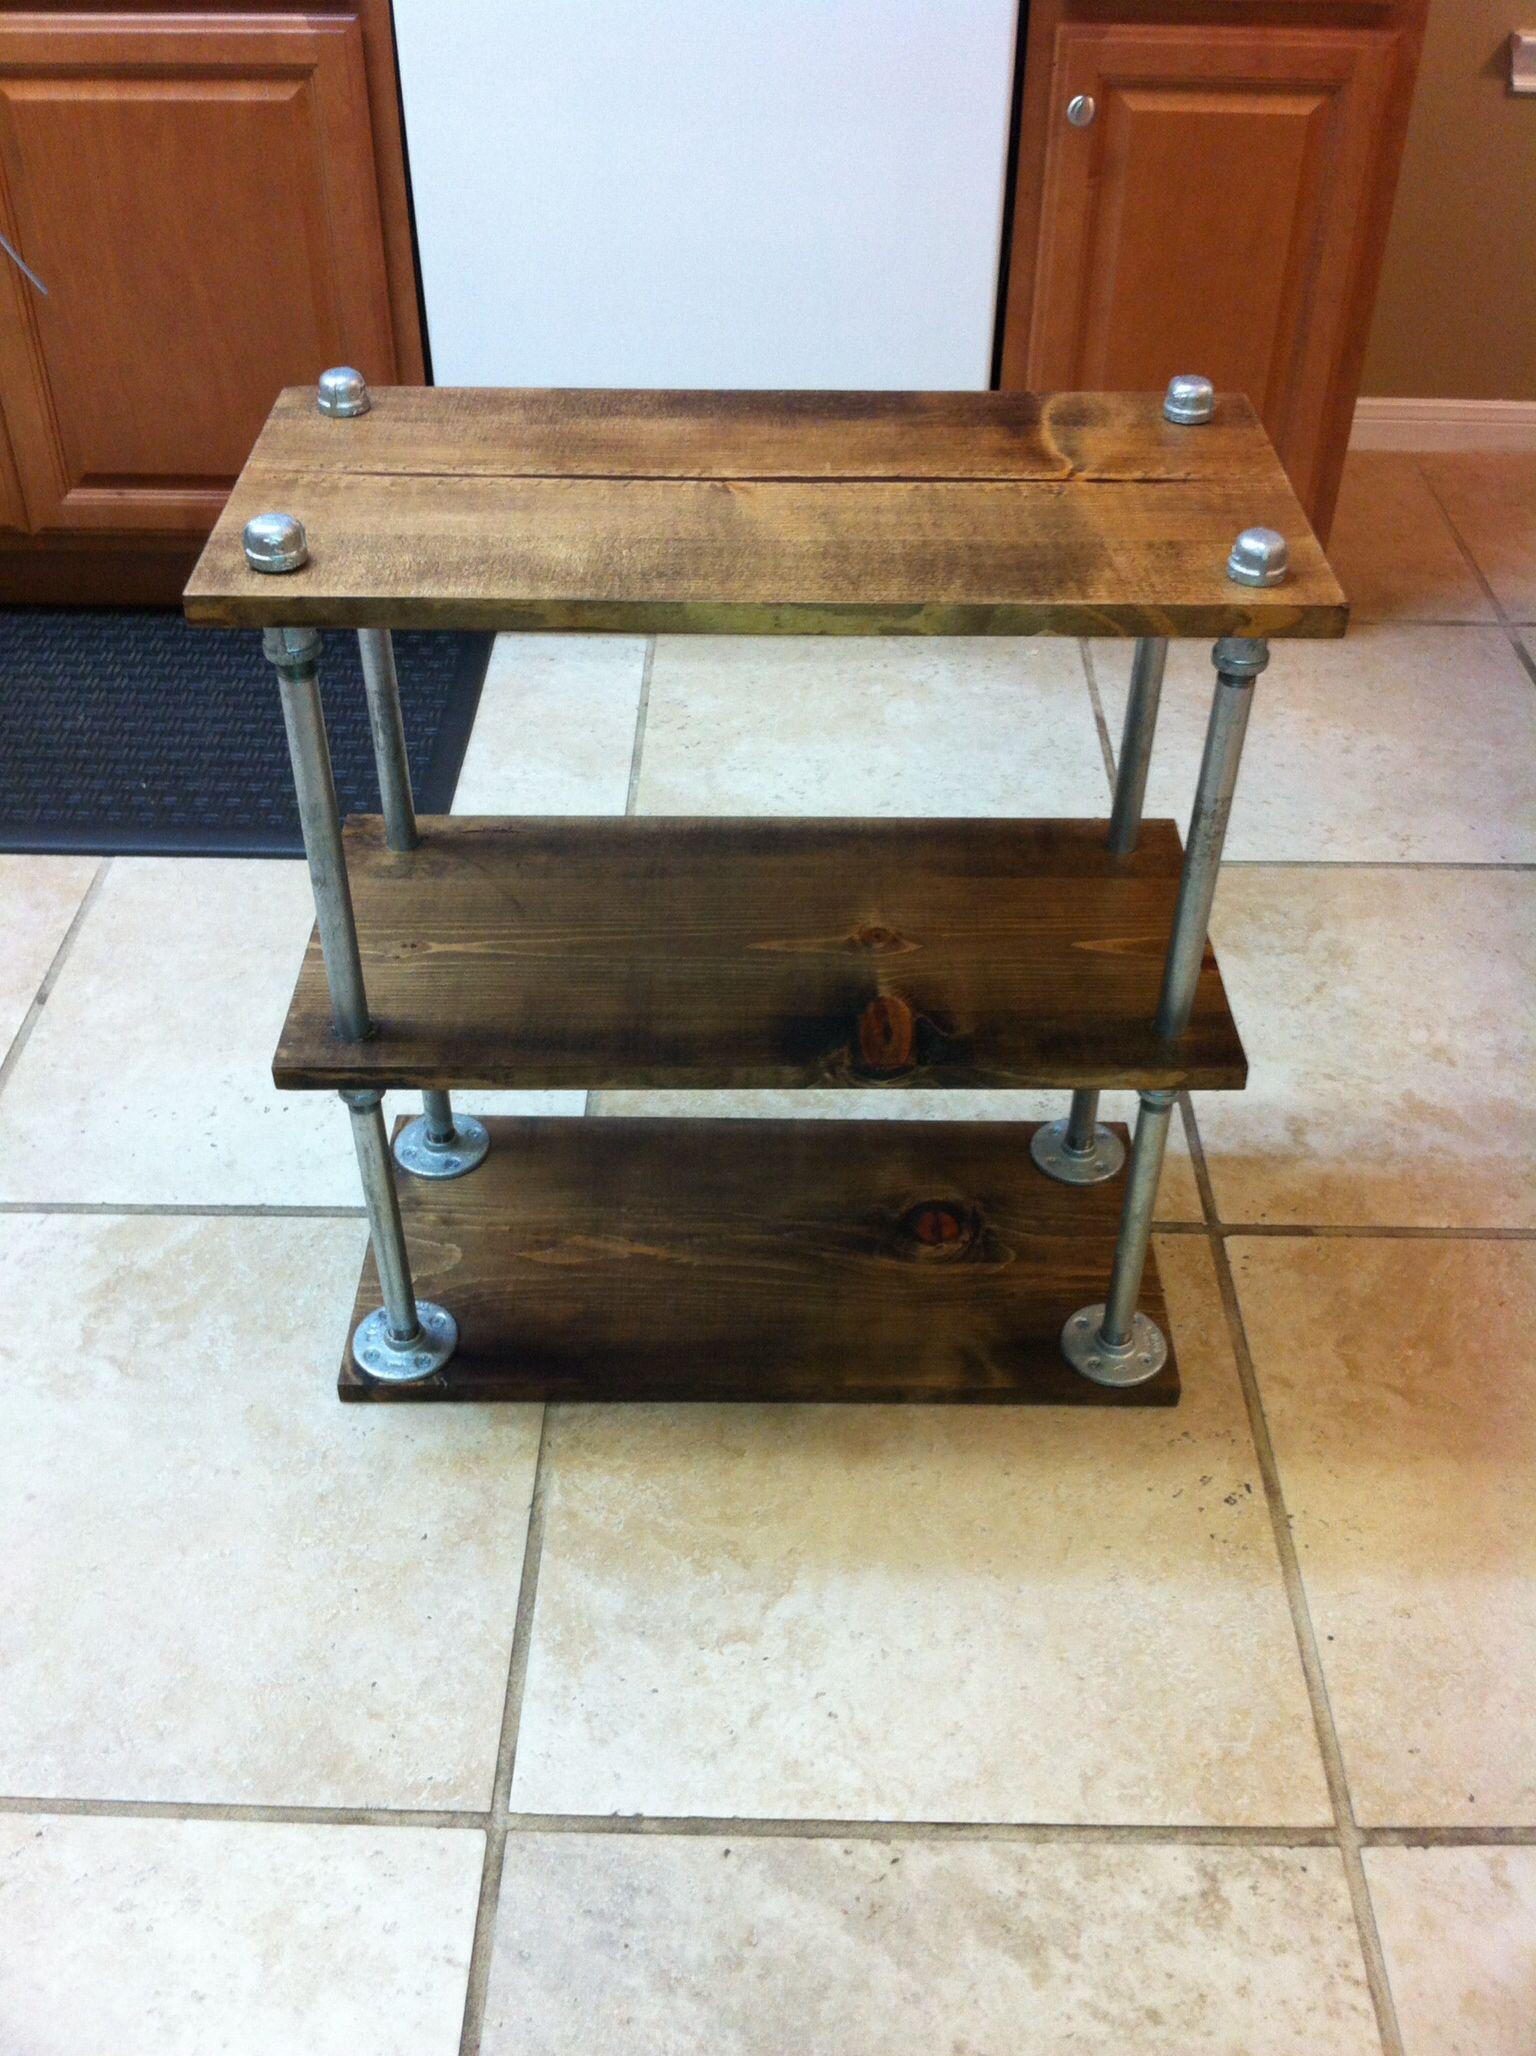 Galvanized pipe side table | DIY | Pinterest | Galvanized ...